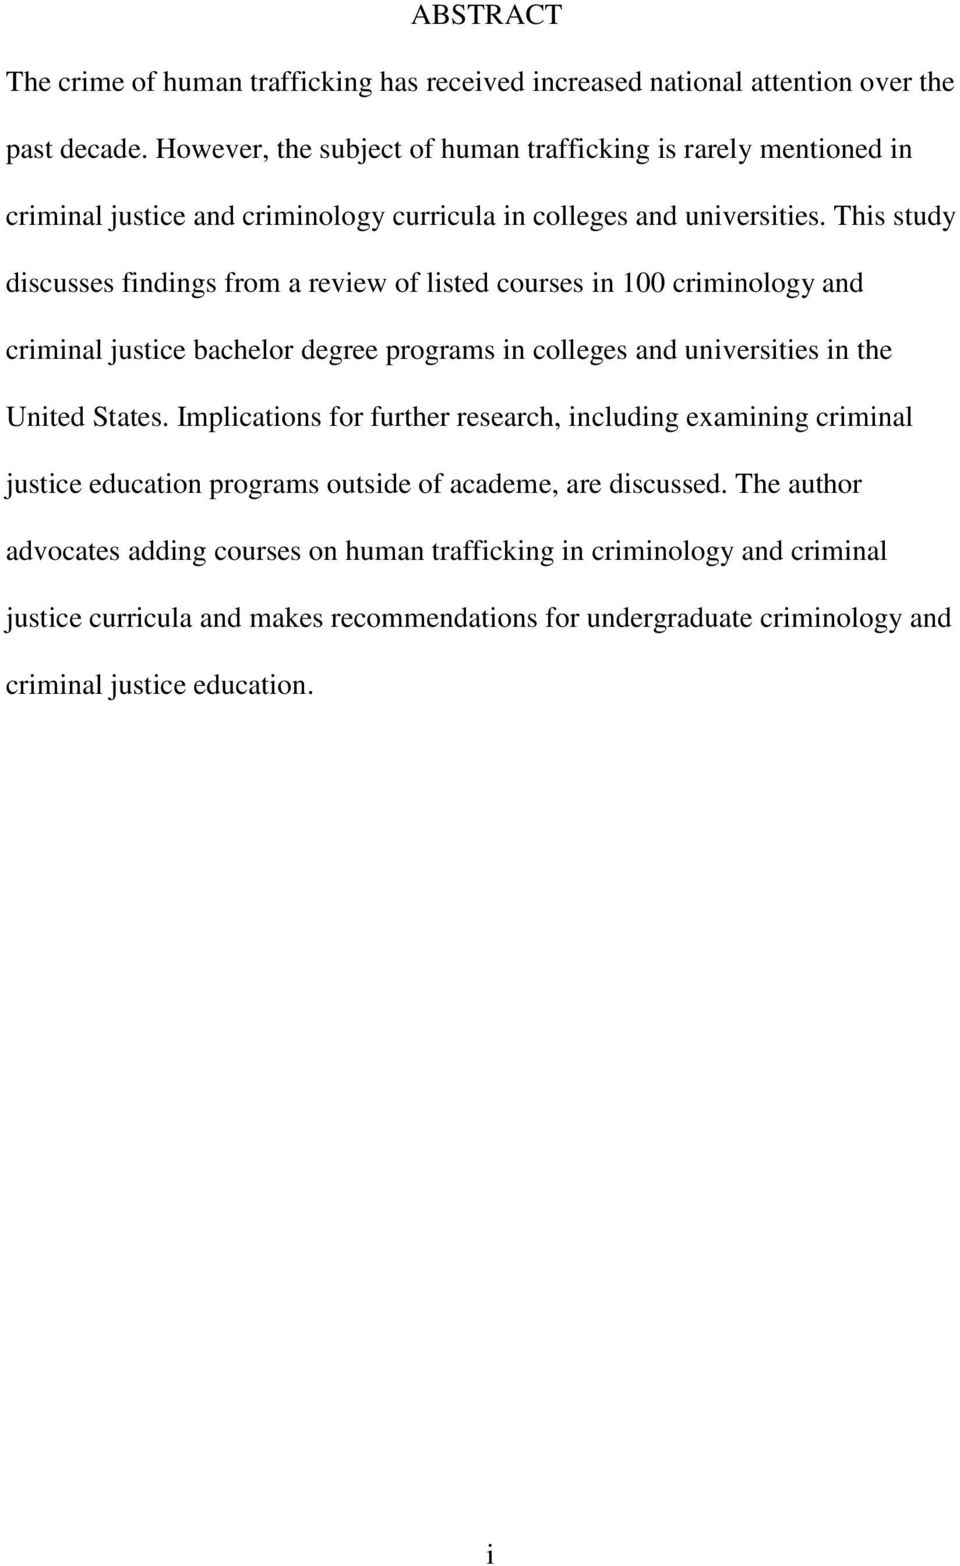 This study discusses findings from a review of listed courses in 100 criminology and criminal justice bachelor degree programs in colleges and universities in the United States.